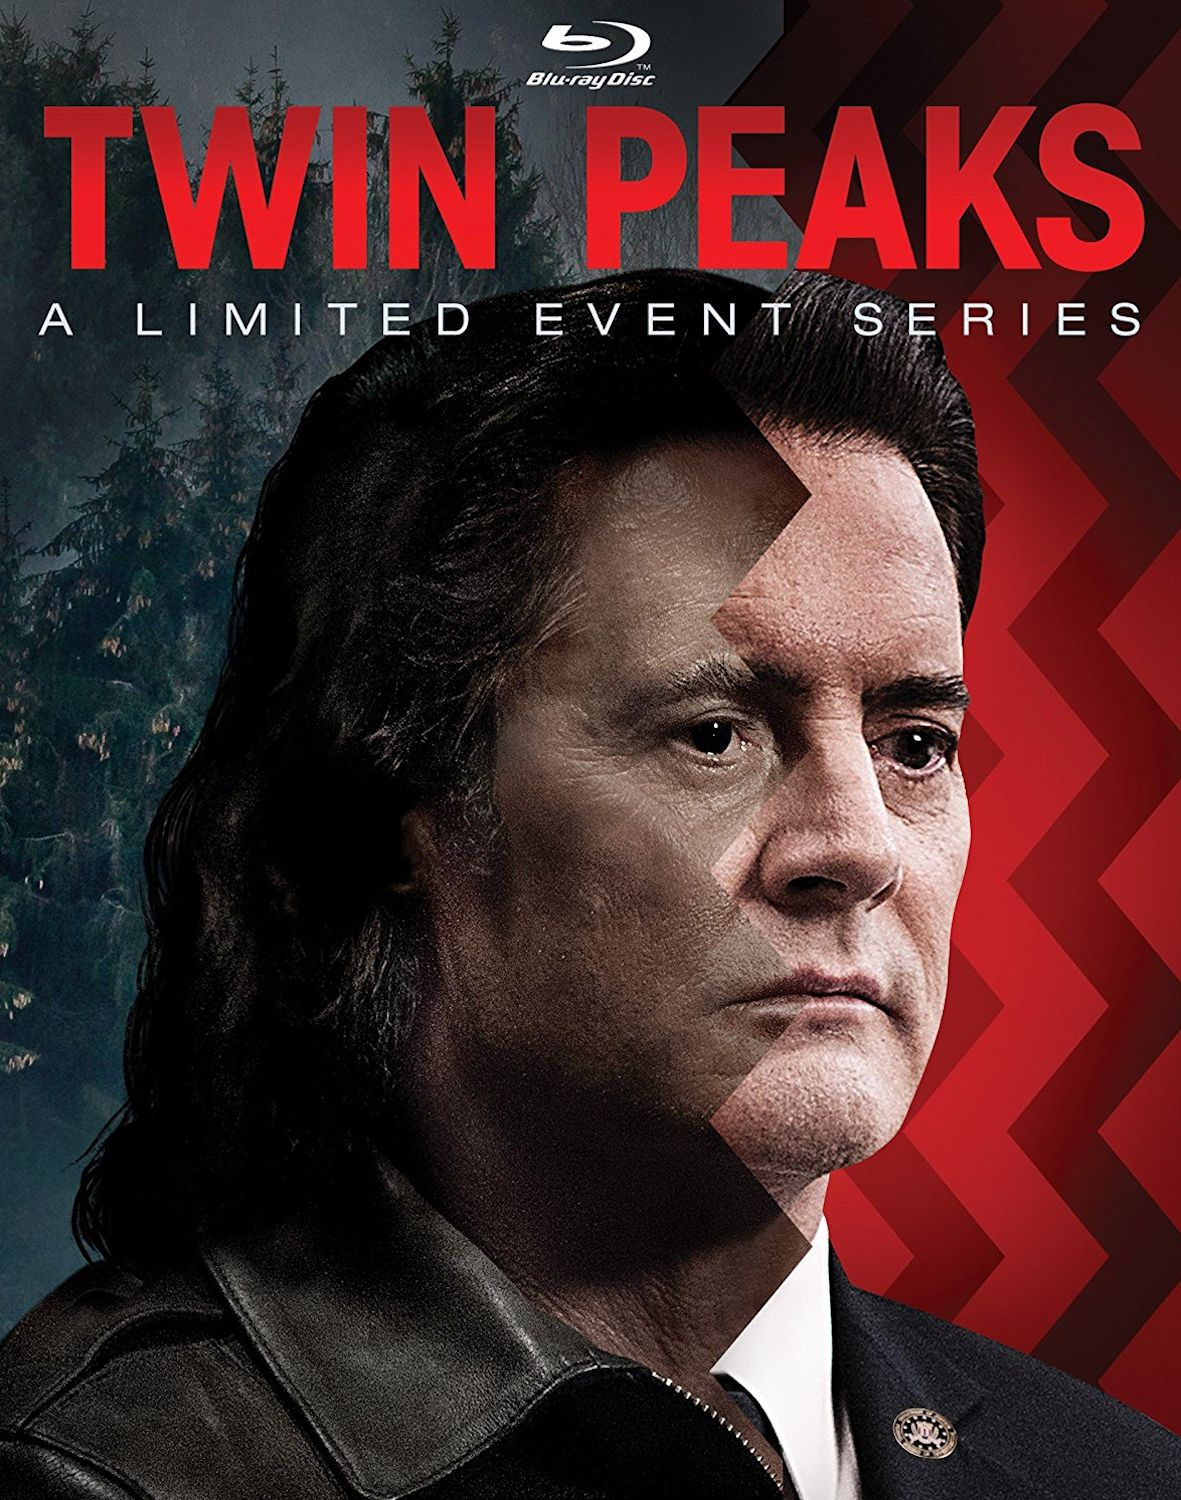 TWIN PEAKS A LIMITED EVENT SERIES BLURAY (PARAMOUNT